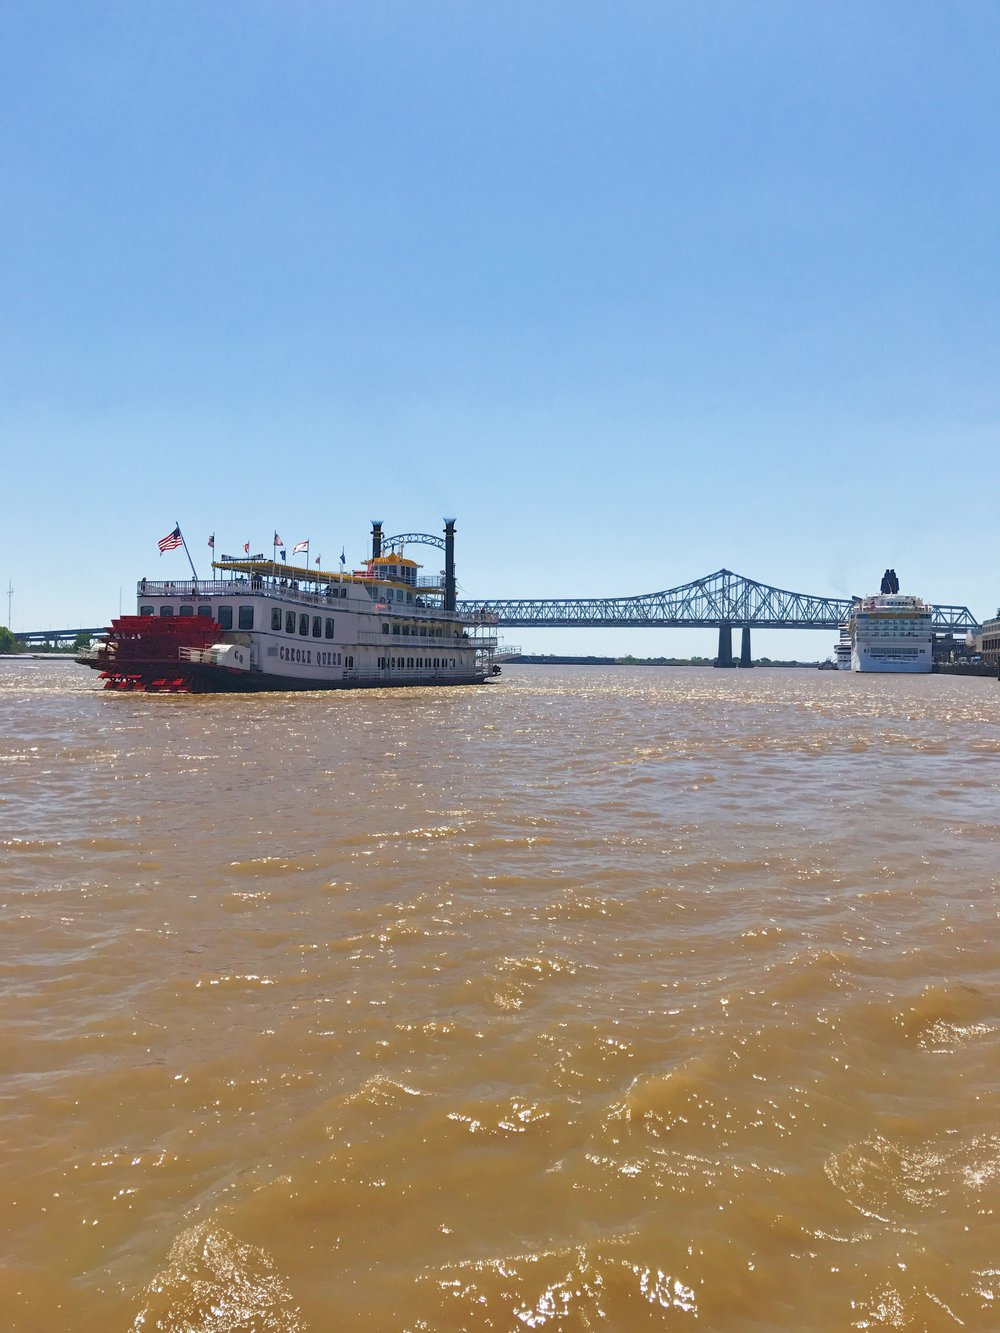 views of the Mississippi River